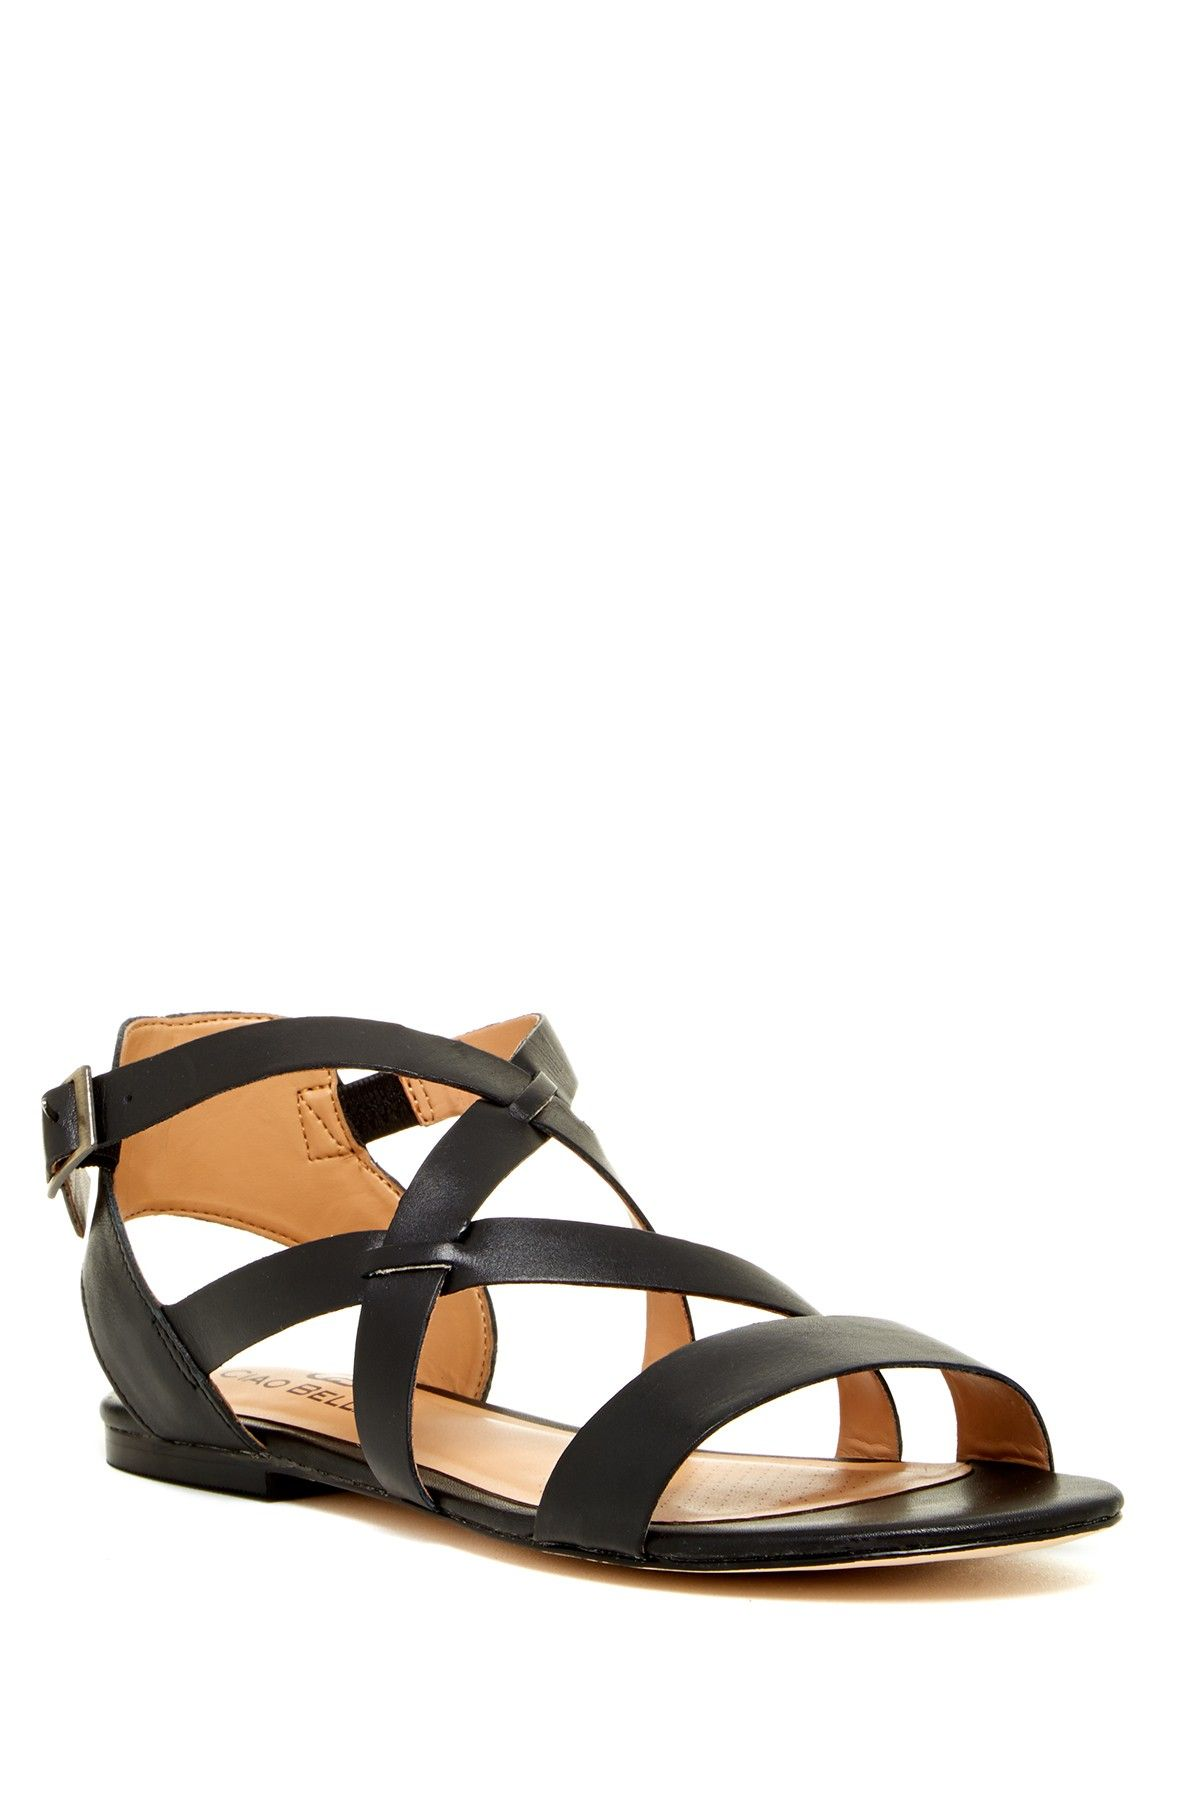 c5f5abc84 Samantha Leather Sandal by Ciao Bella on  nordstrom rack